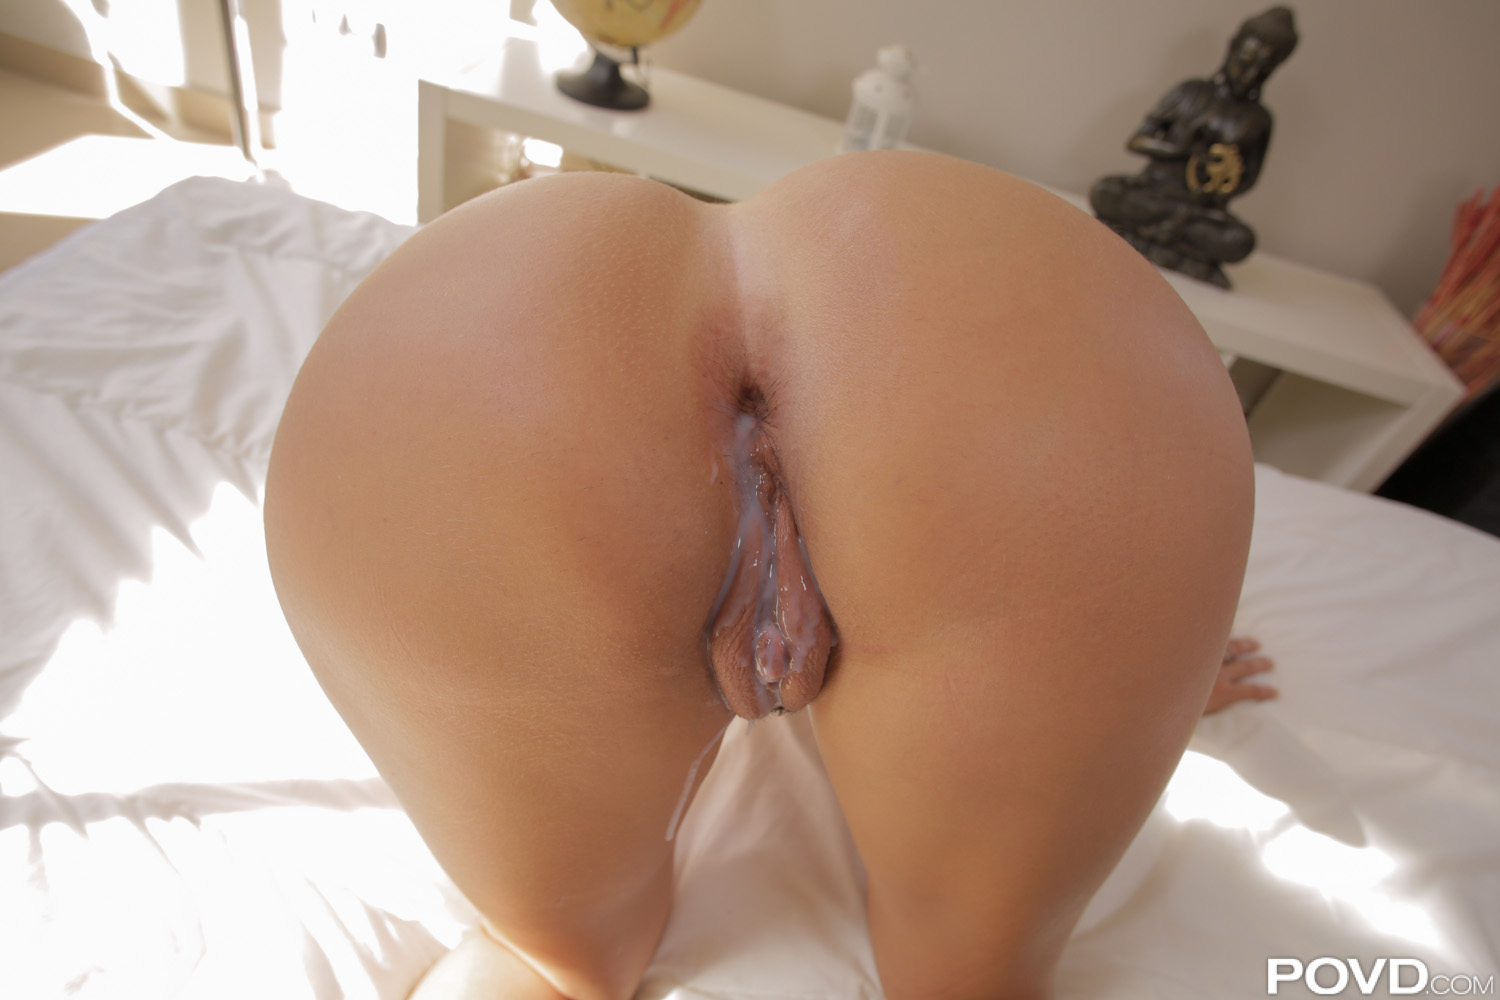 Latinas big ass com